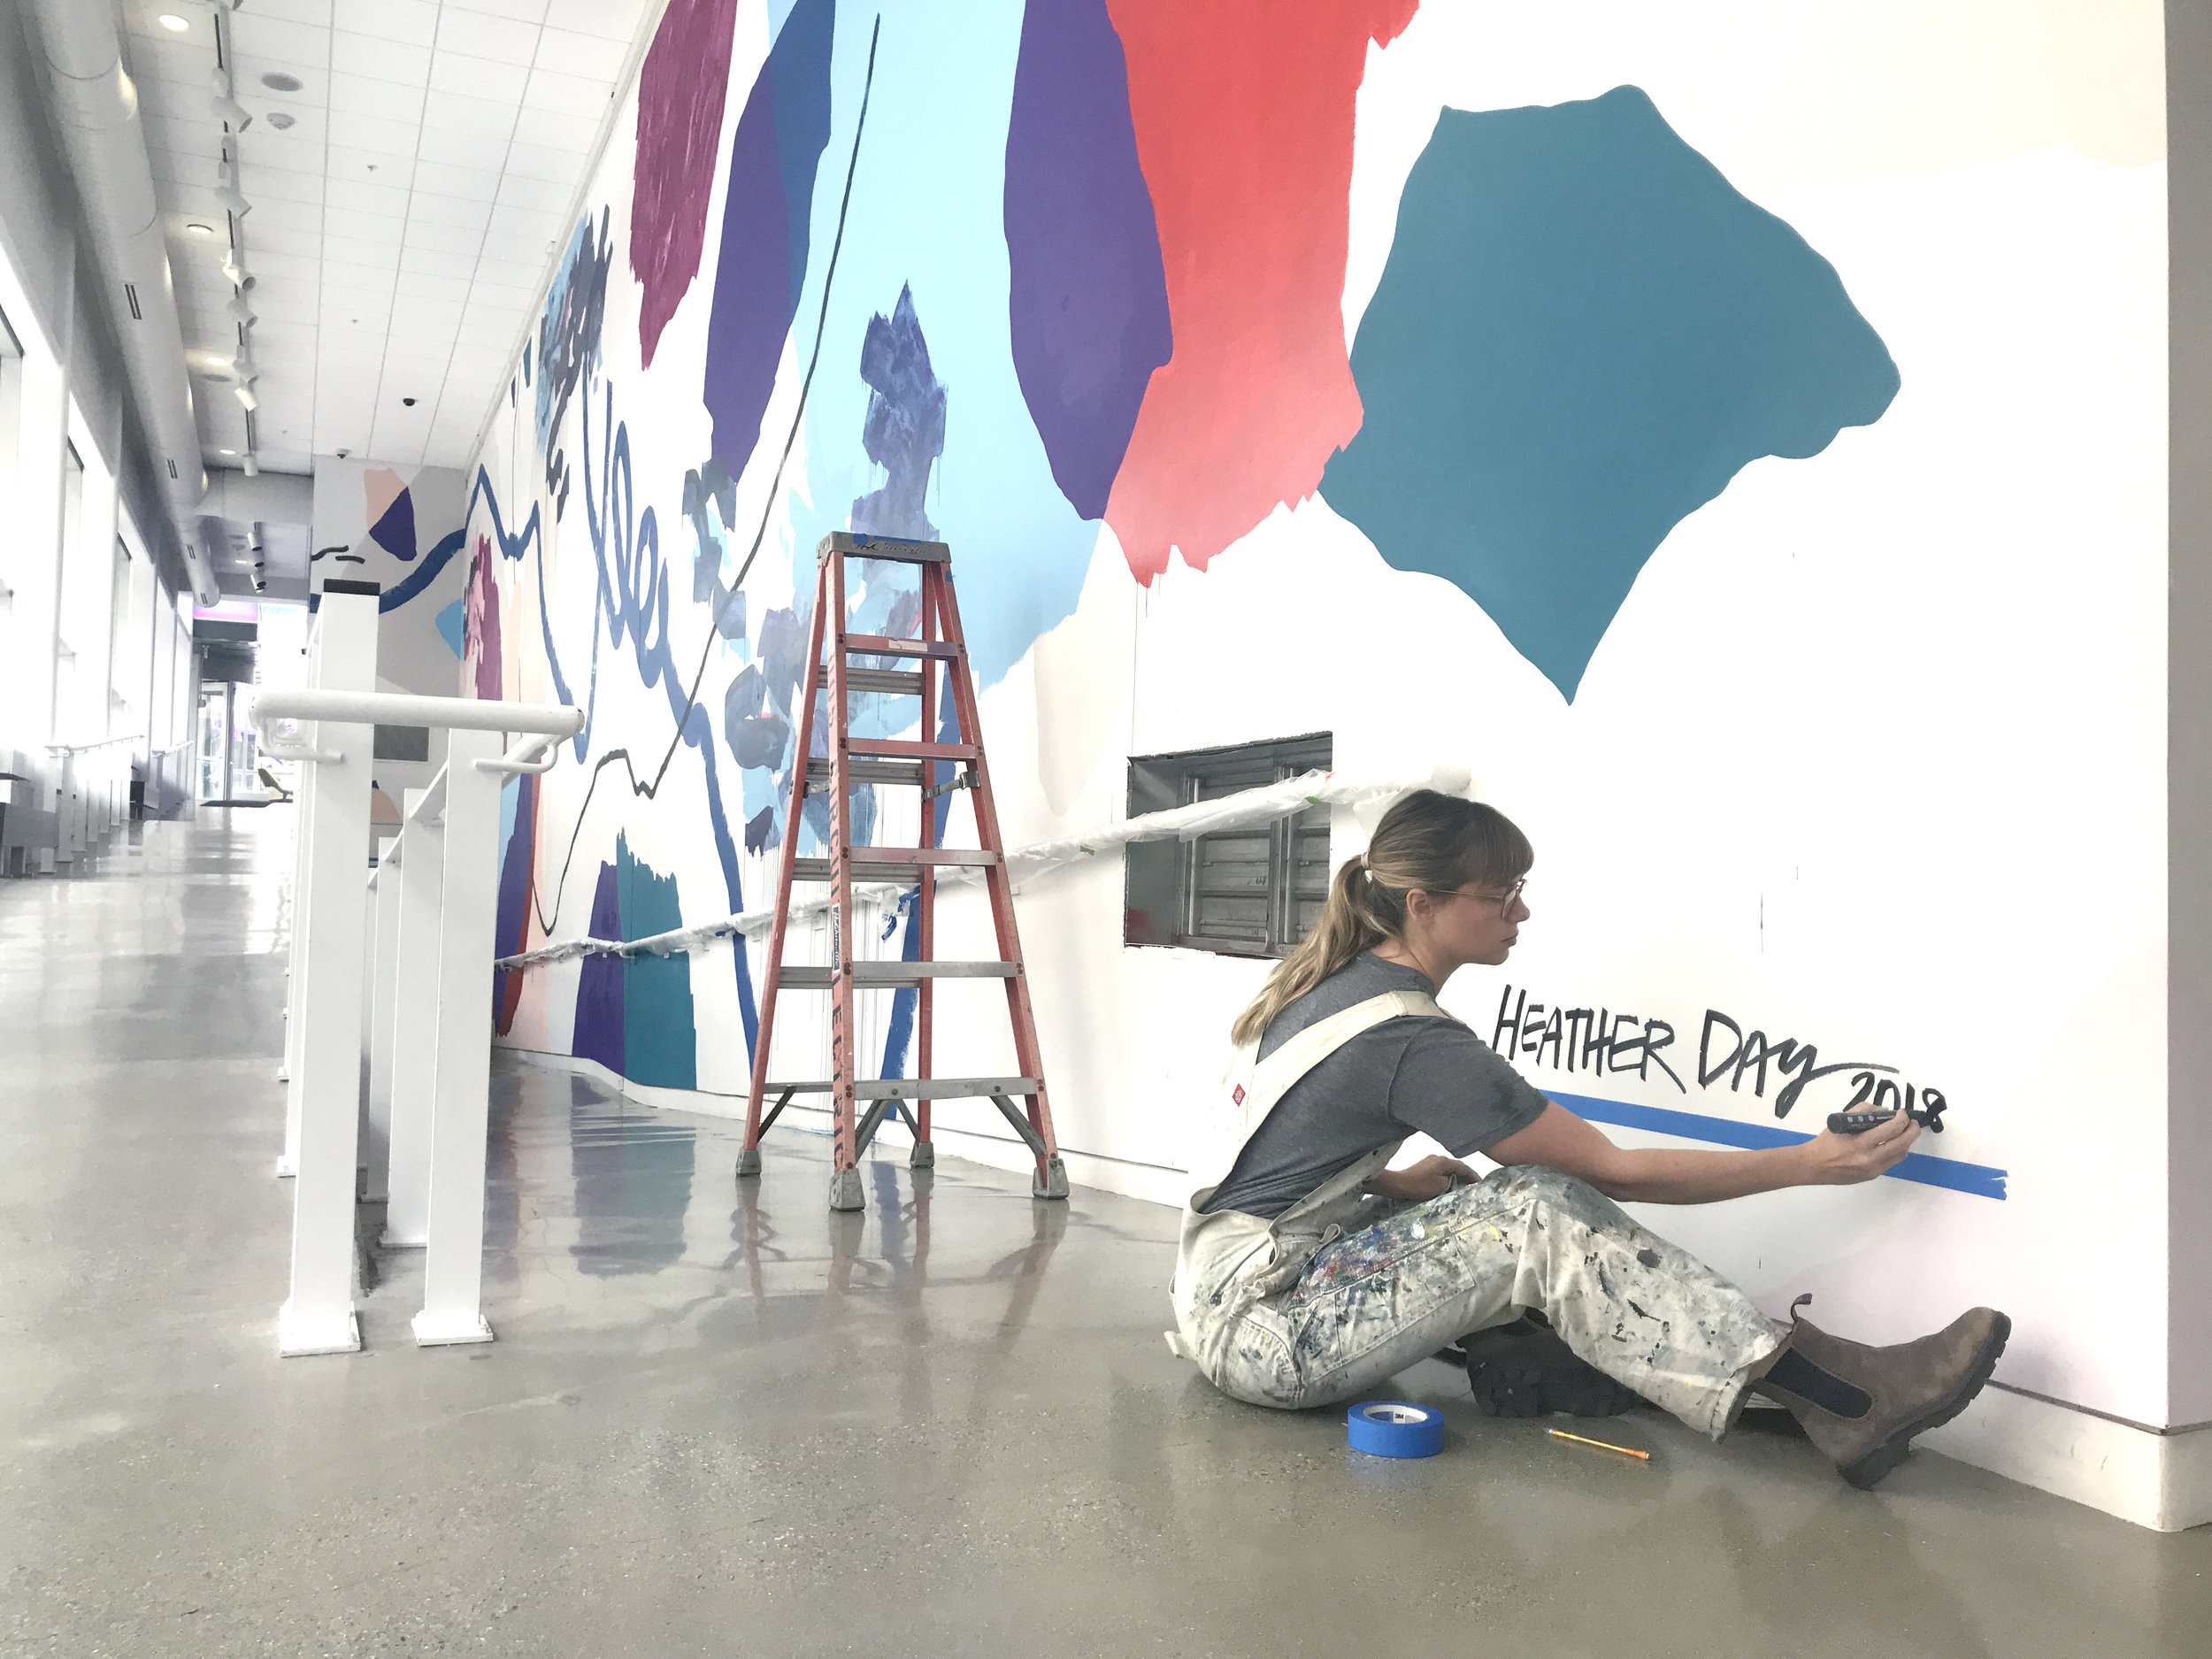 Heather Day signs UICA's Pantone Color of the Year mural